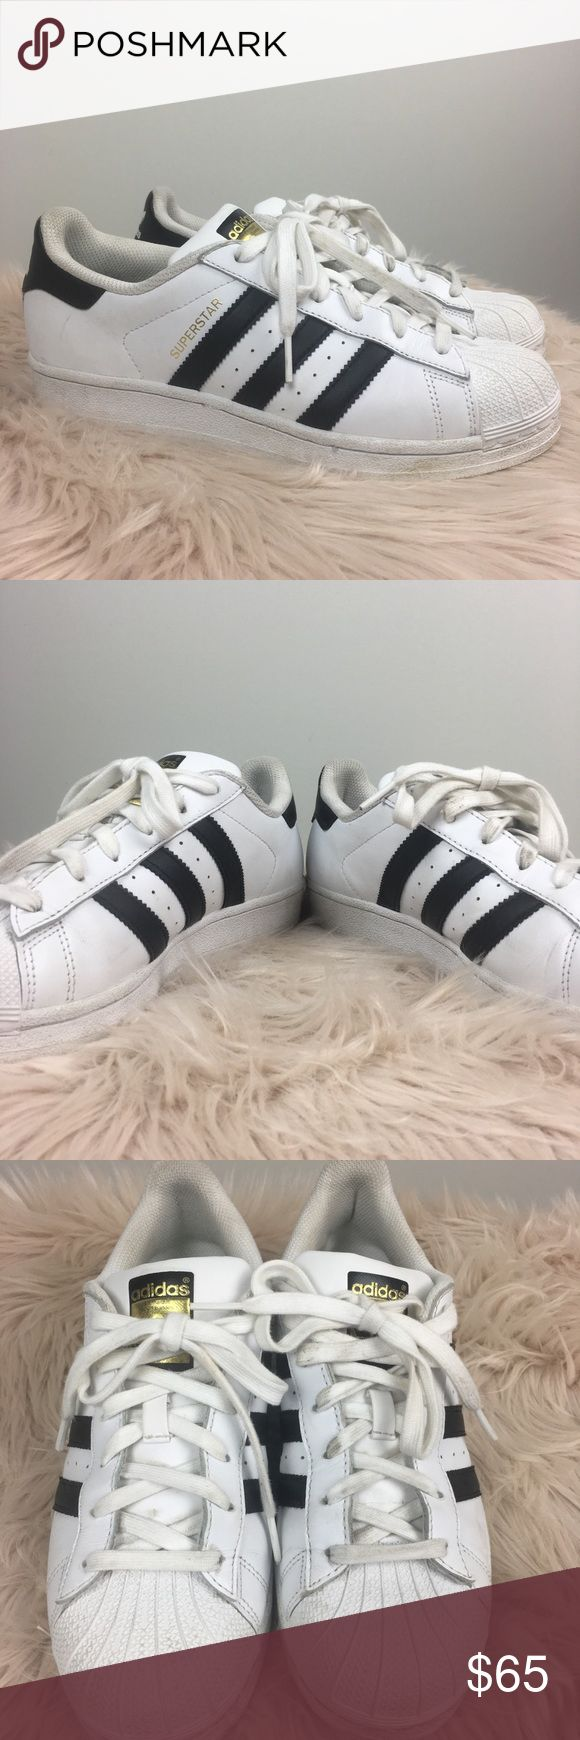 Adidas Superstar Original Adidas Superstar Original. Size 7.5. Sneakers Have Been Worn. Great Used Condition. Gold Foil Detail. Run A bit Larger In My Opinion. Must Have Sneaker!! Adidas Shoes Sneakers